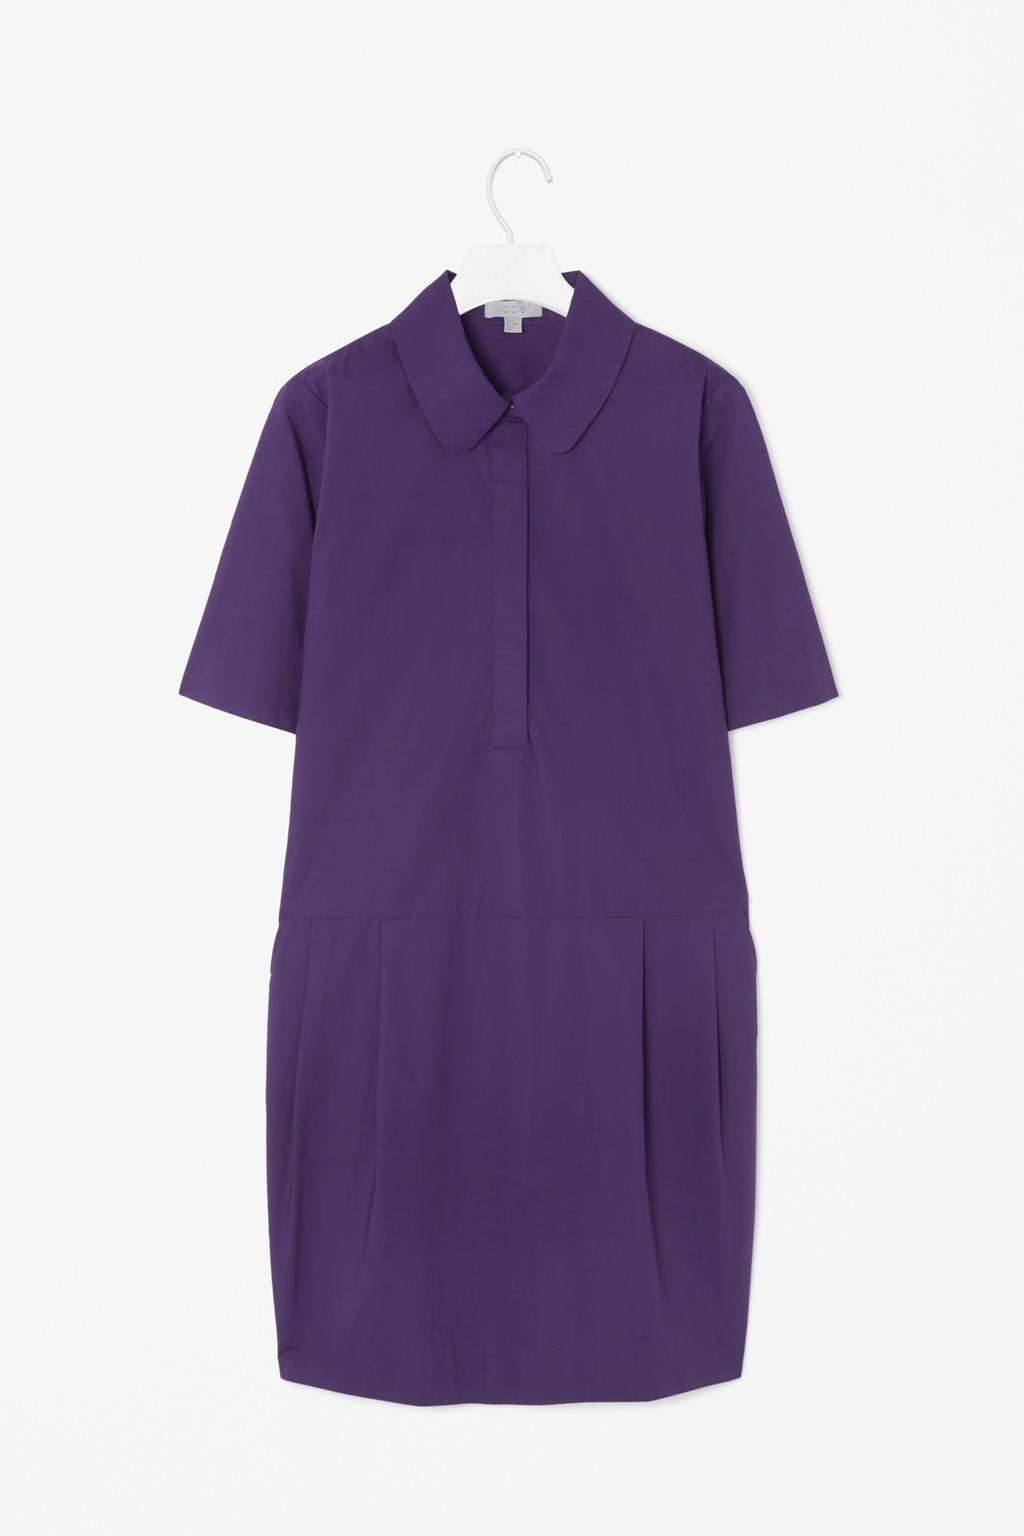 Rounded Collar Shirt Dress - style: shirt; length: mid thigh; neckline: shirt collar/peter pan/zip with opening; pattern: plain; predominant colour: purple; occasions: casual, evening, creative work; fit: straight cut; fibres: cotton - 100%; sleeve length: short sleeve; sleeve style: standard; texture group: cotton feel fabrics; pattern type: fabric; season: s/s 2014